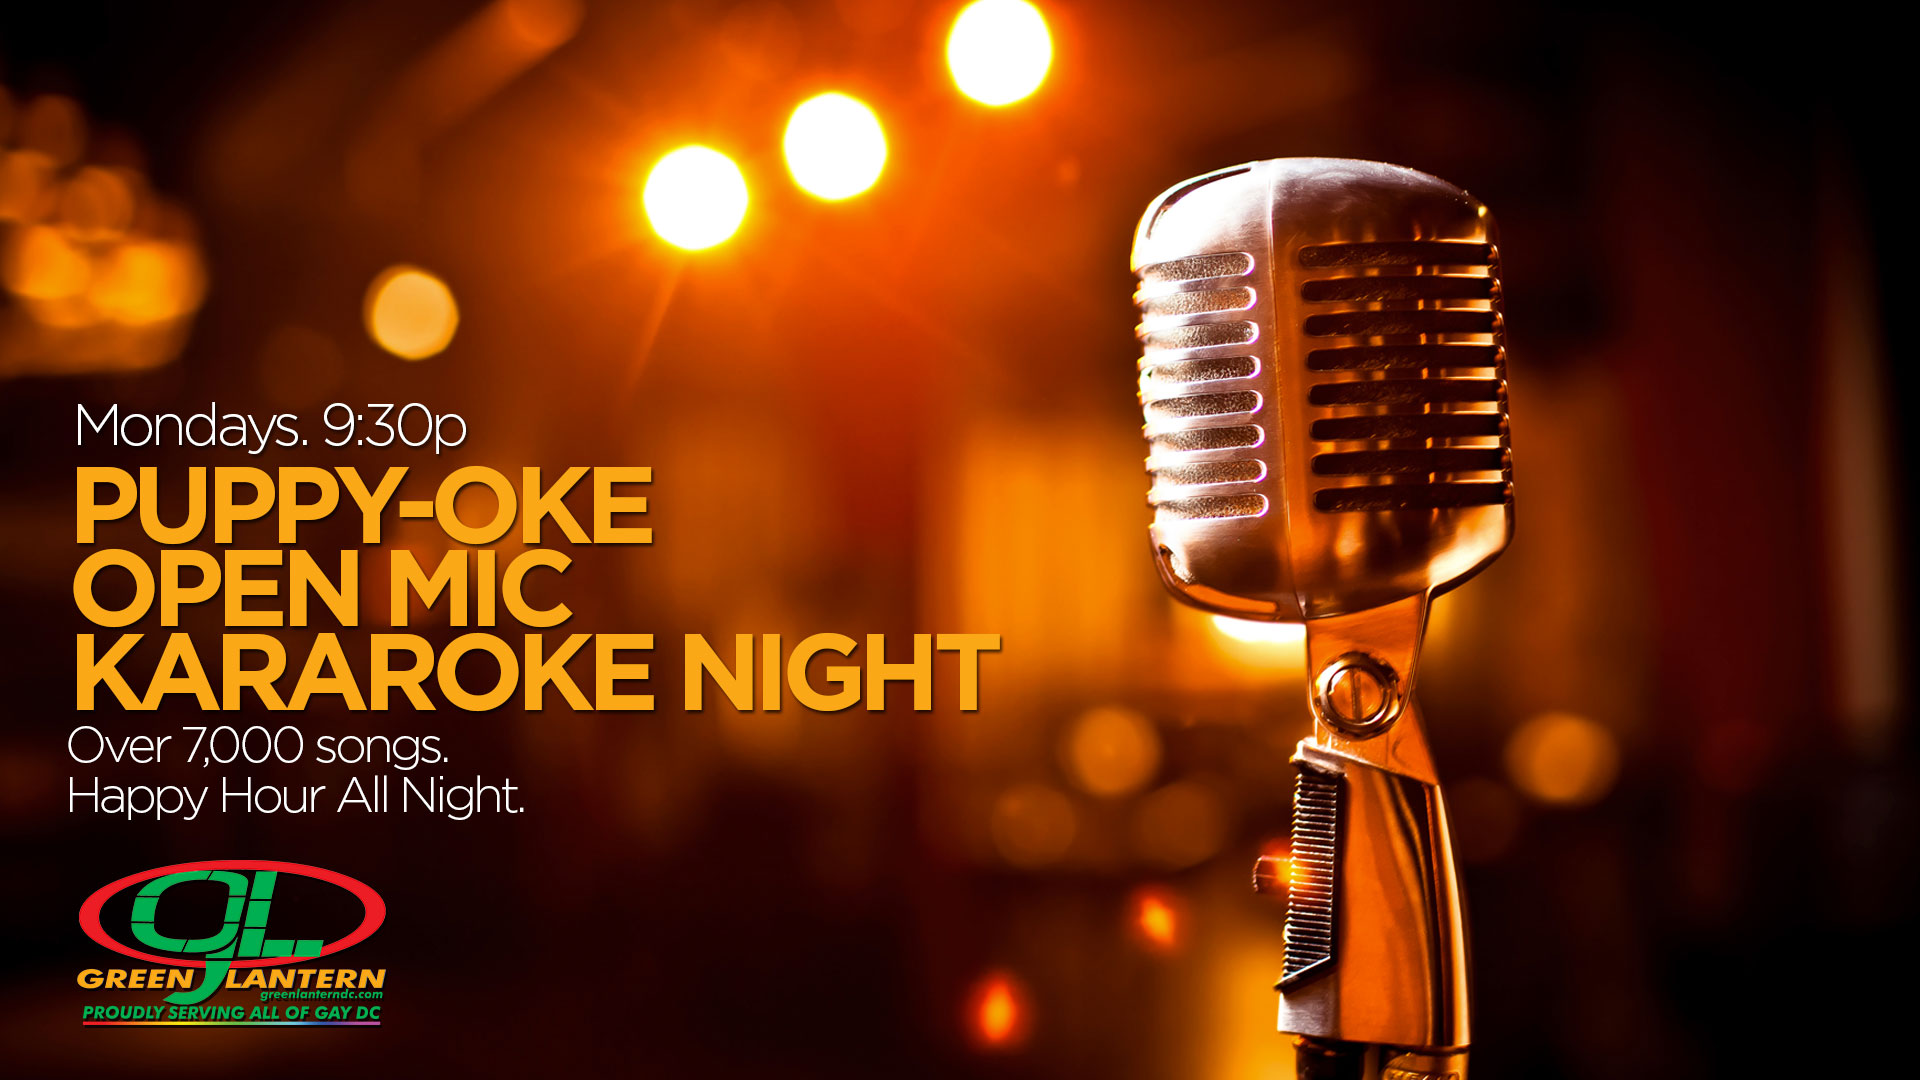 Puppy-Oke: Open Mic Karoke Night